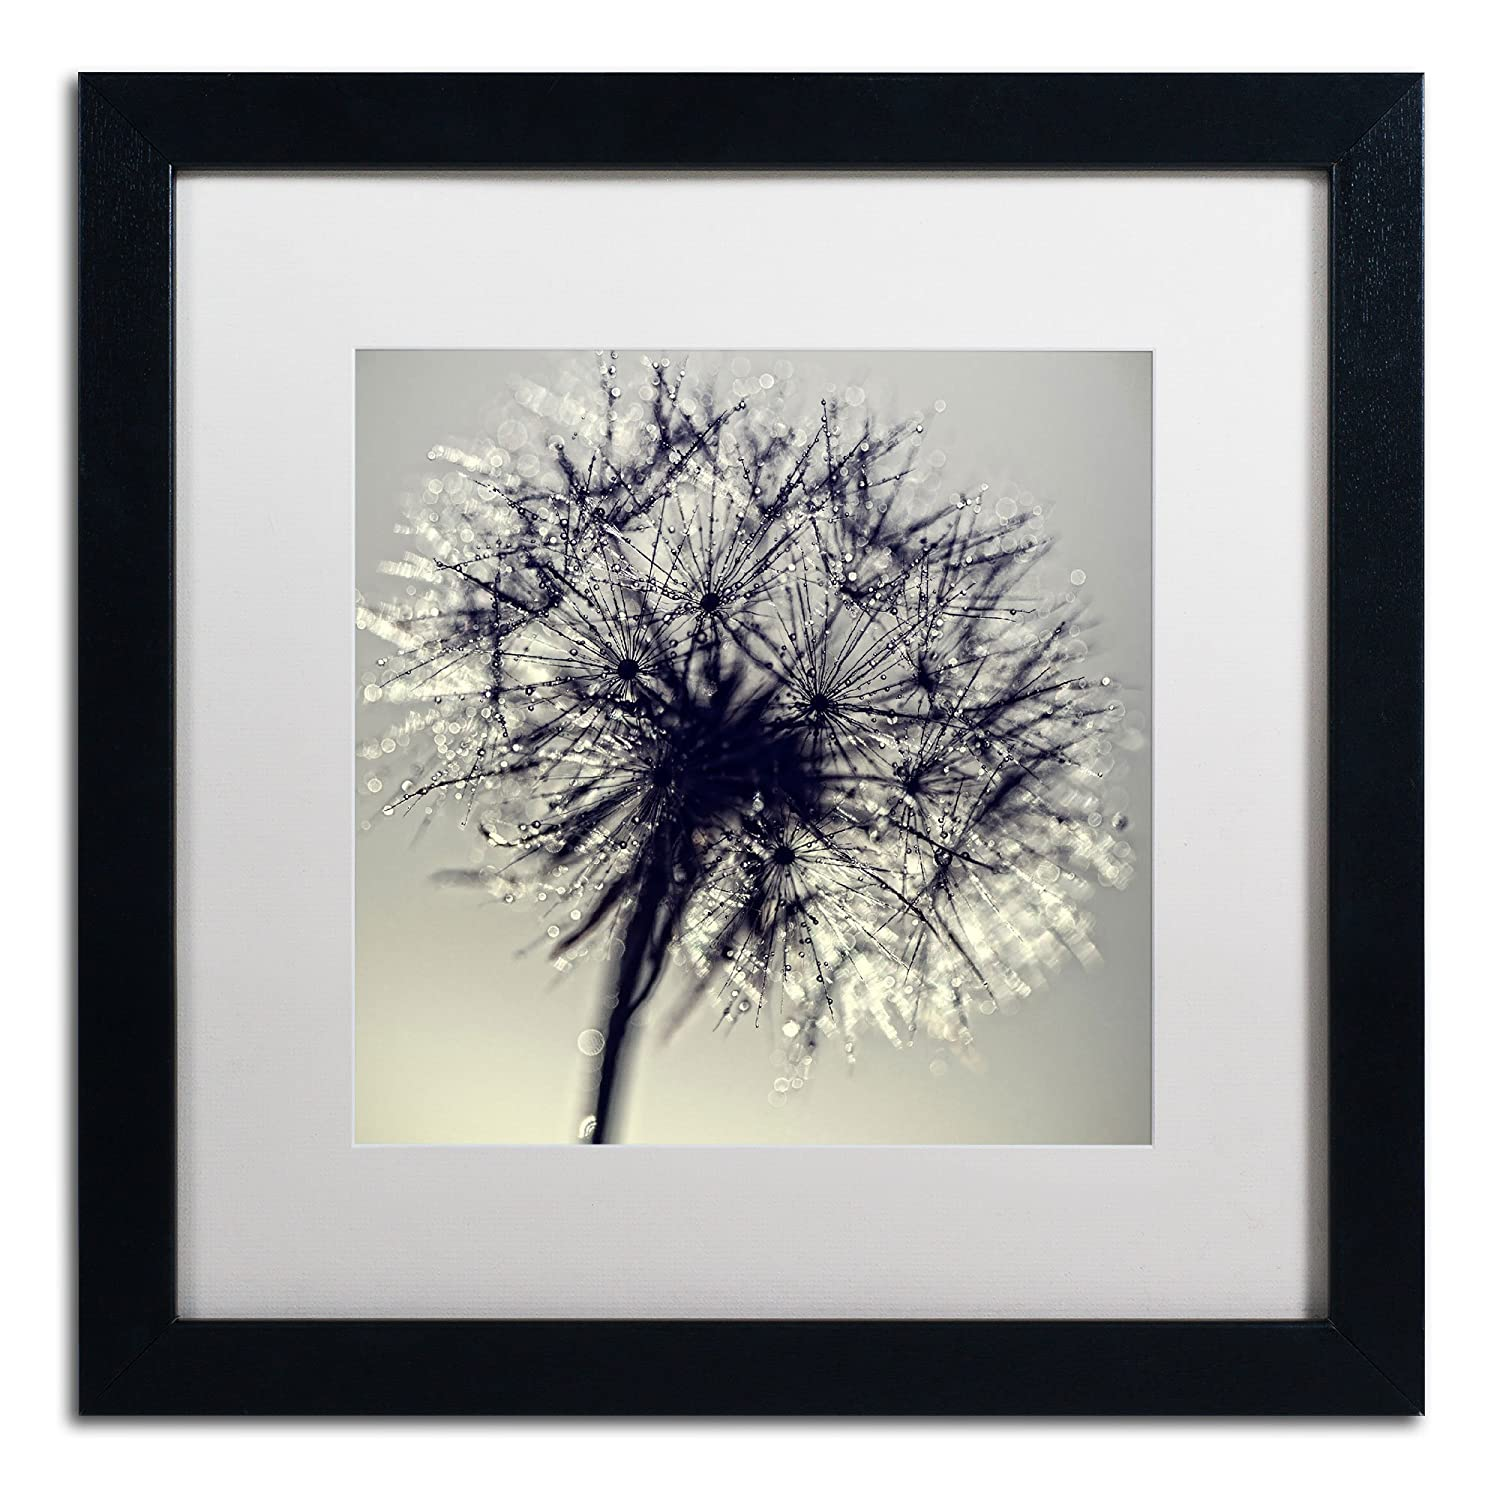 Amazon com morning sparkles artwork beata czyzowska young in white matte and black frame 11 by 11 inch posters prints